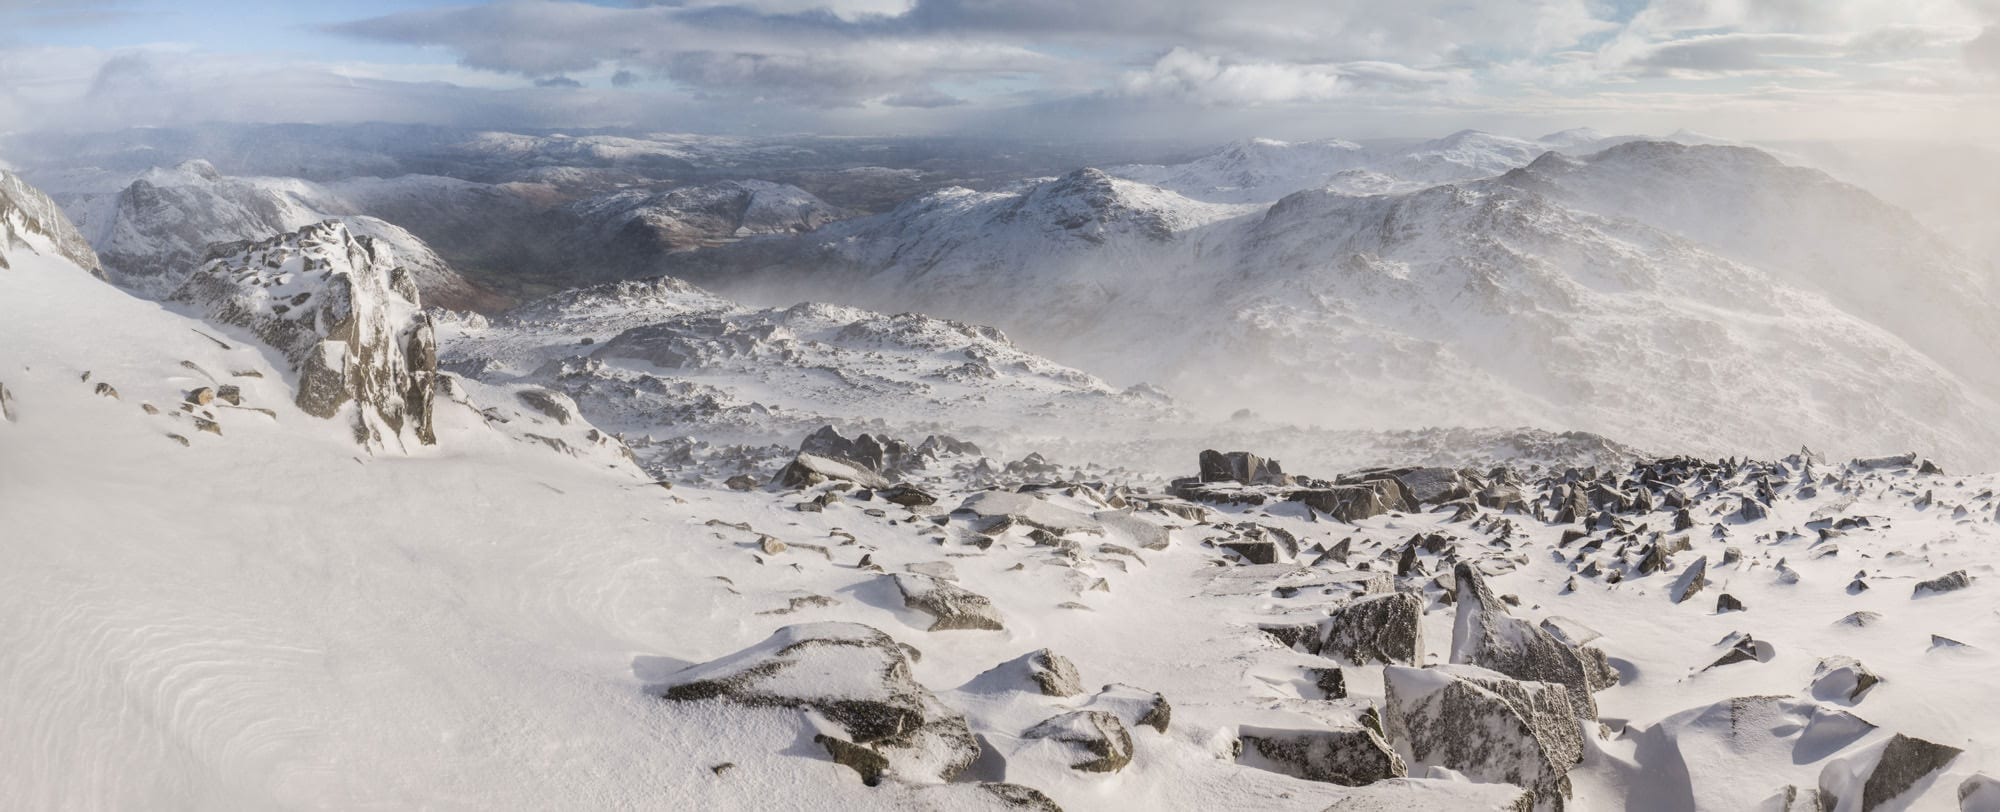 Bowfell and Crinkle Crags Winter - Lake District Photography